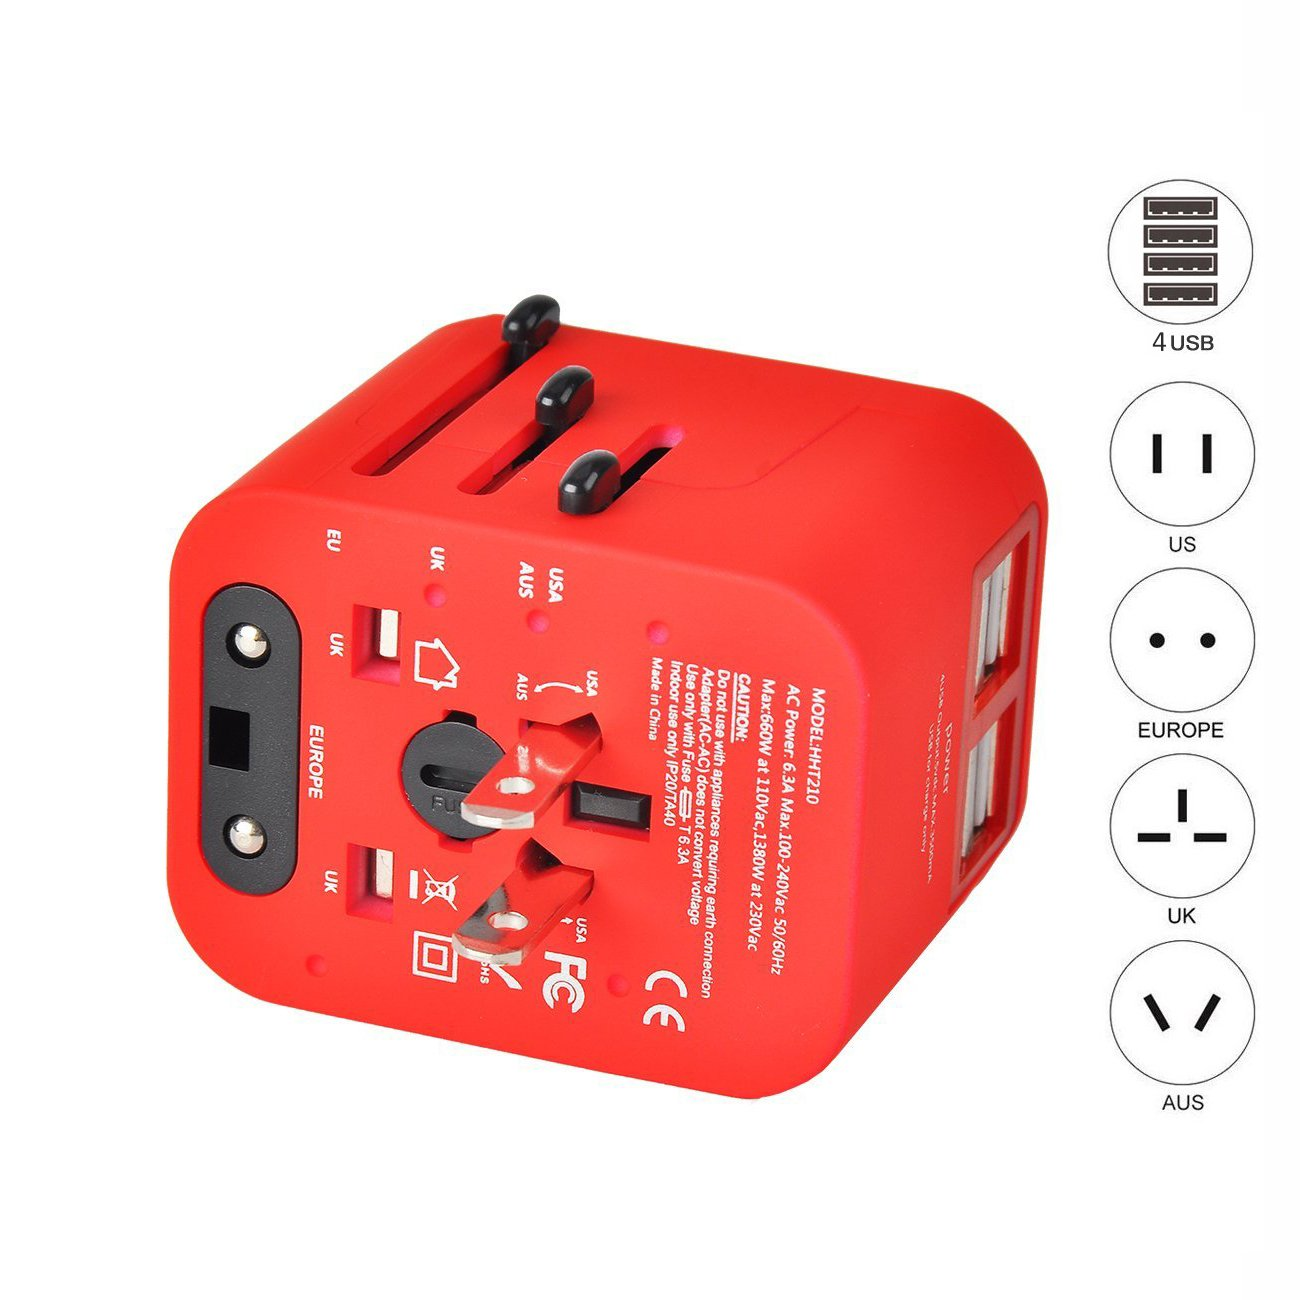 MakerFun Travel Adapter Universal Travel Adapter Kit with 3.5A 4 USB Ports Travel Plug Adapter Covers 150+Countries Europe UK/Germany/France/Canada/Mexico and More Red